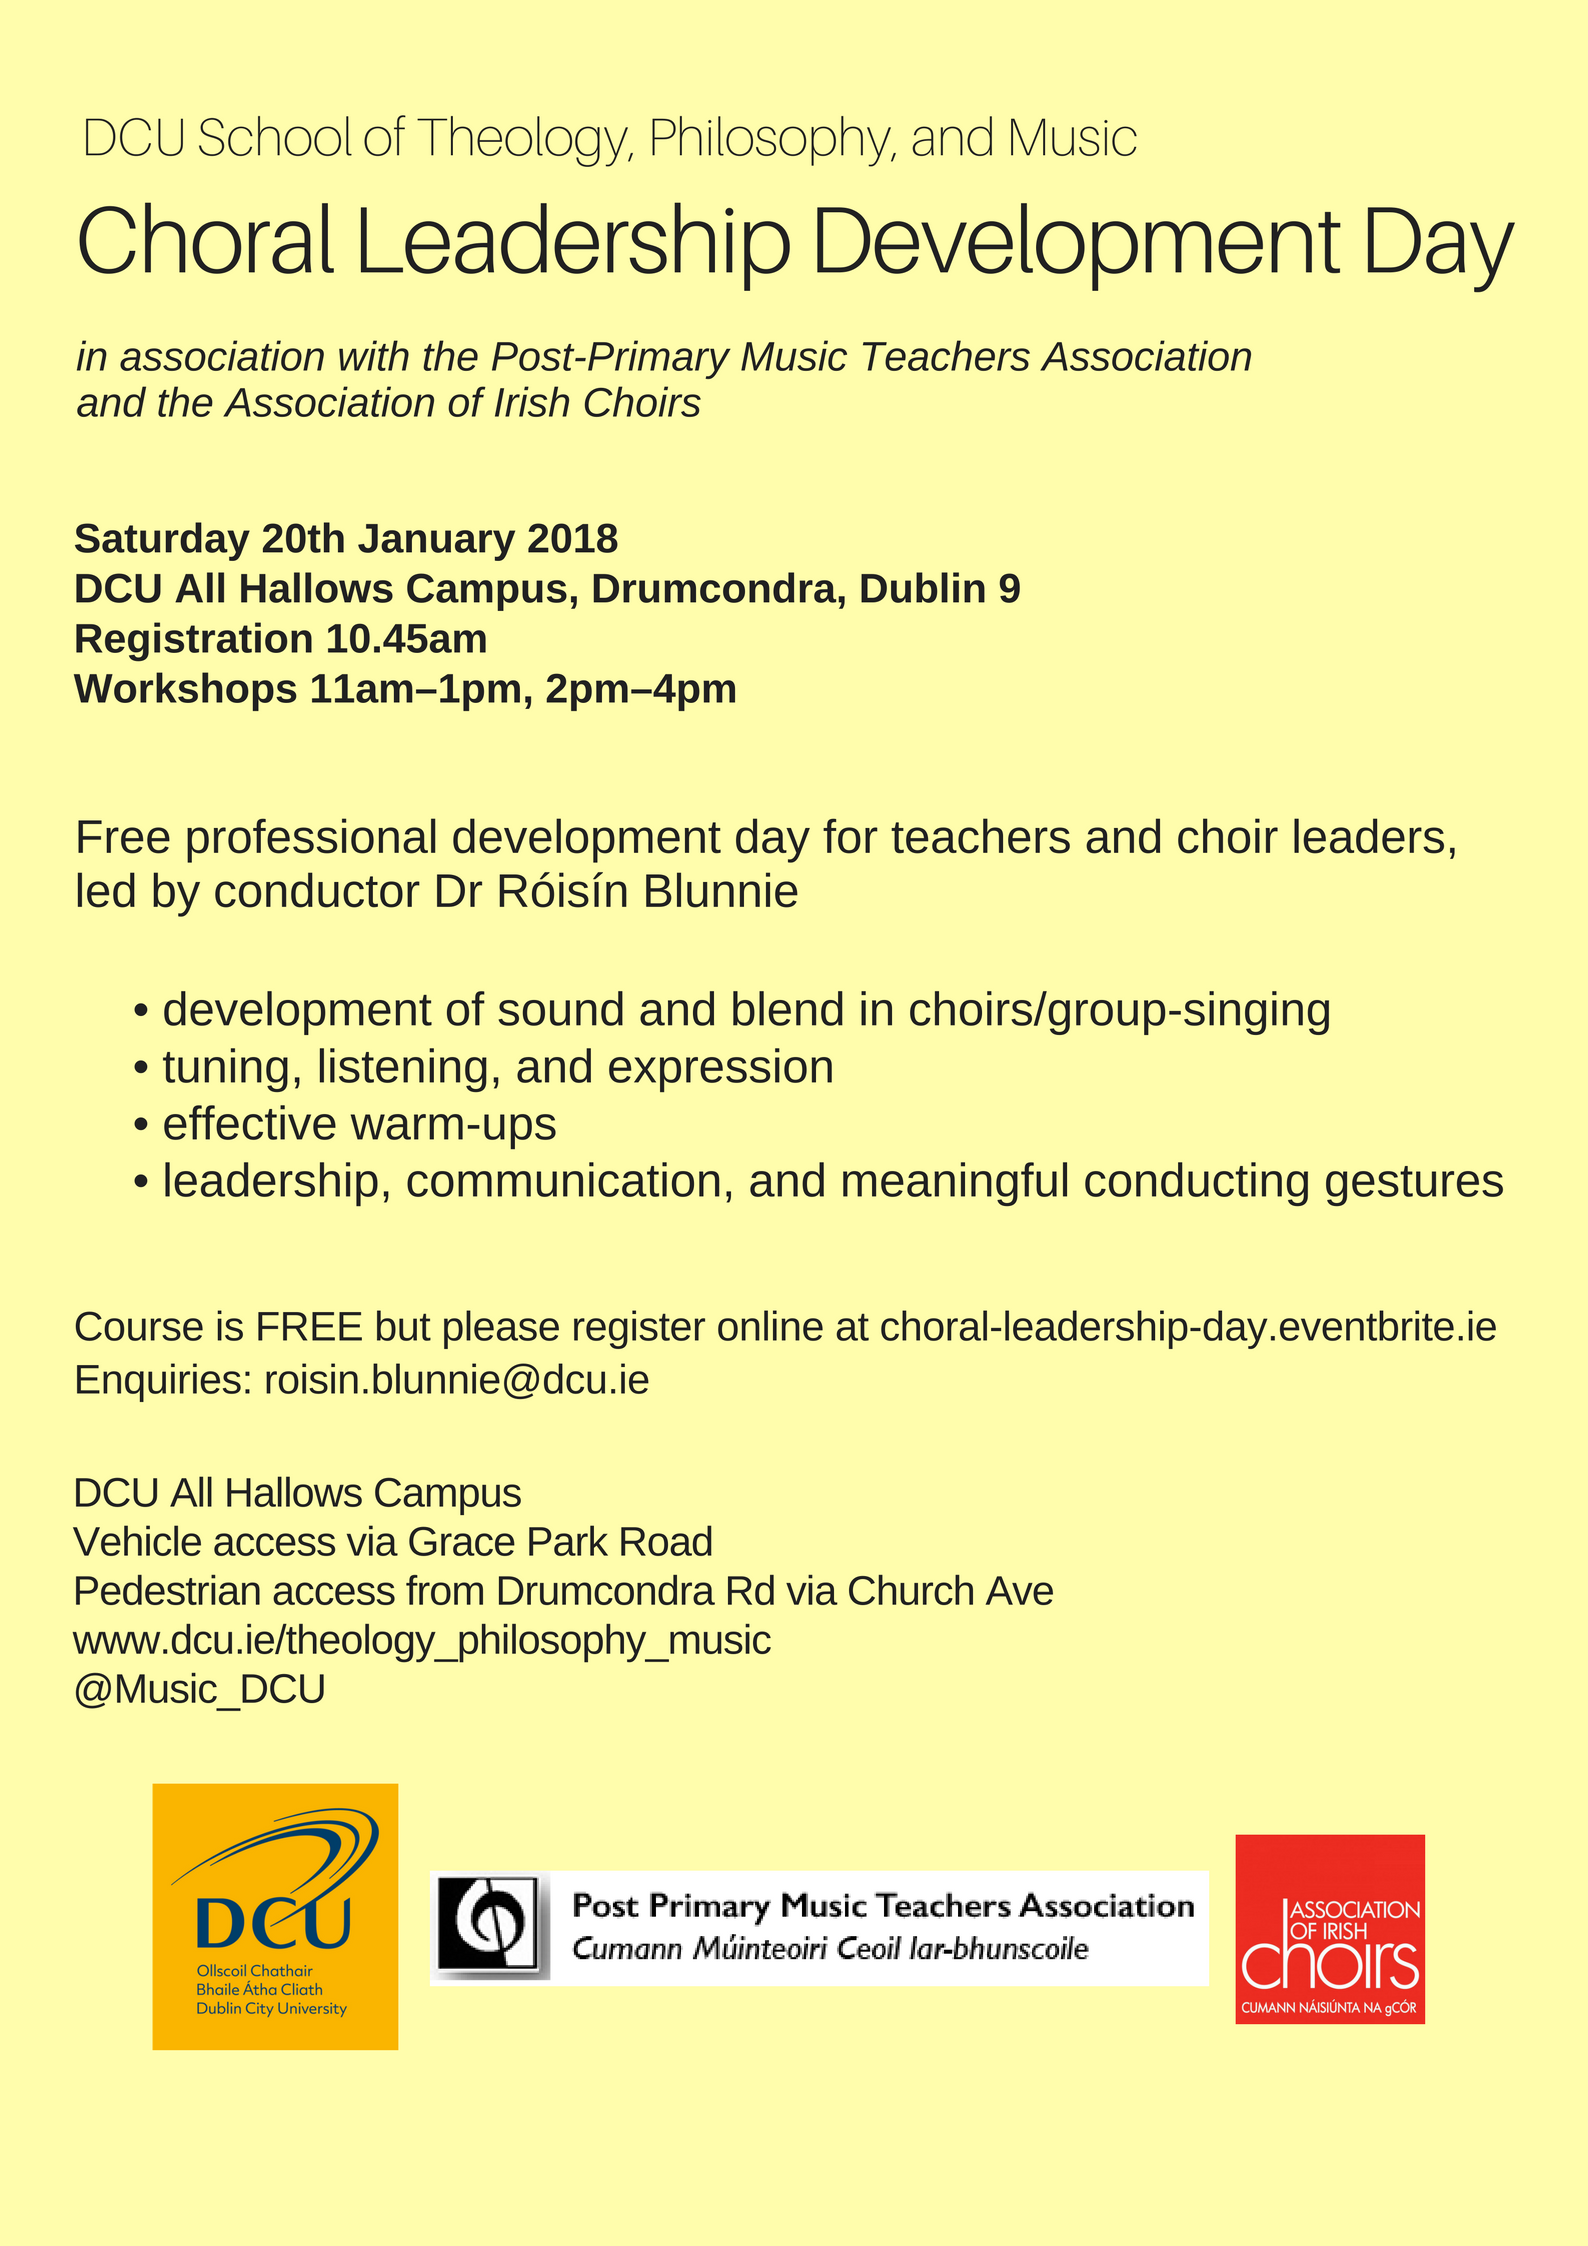 DCU Choral Leadership Day poster1a